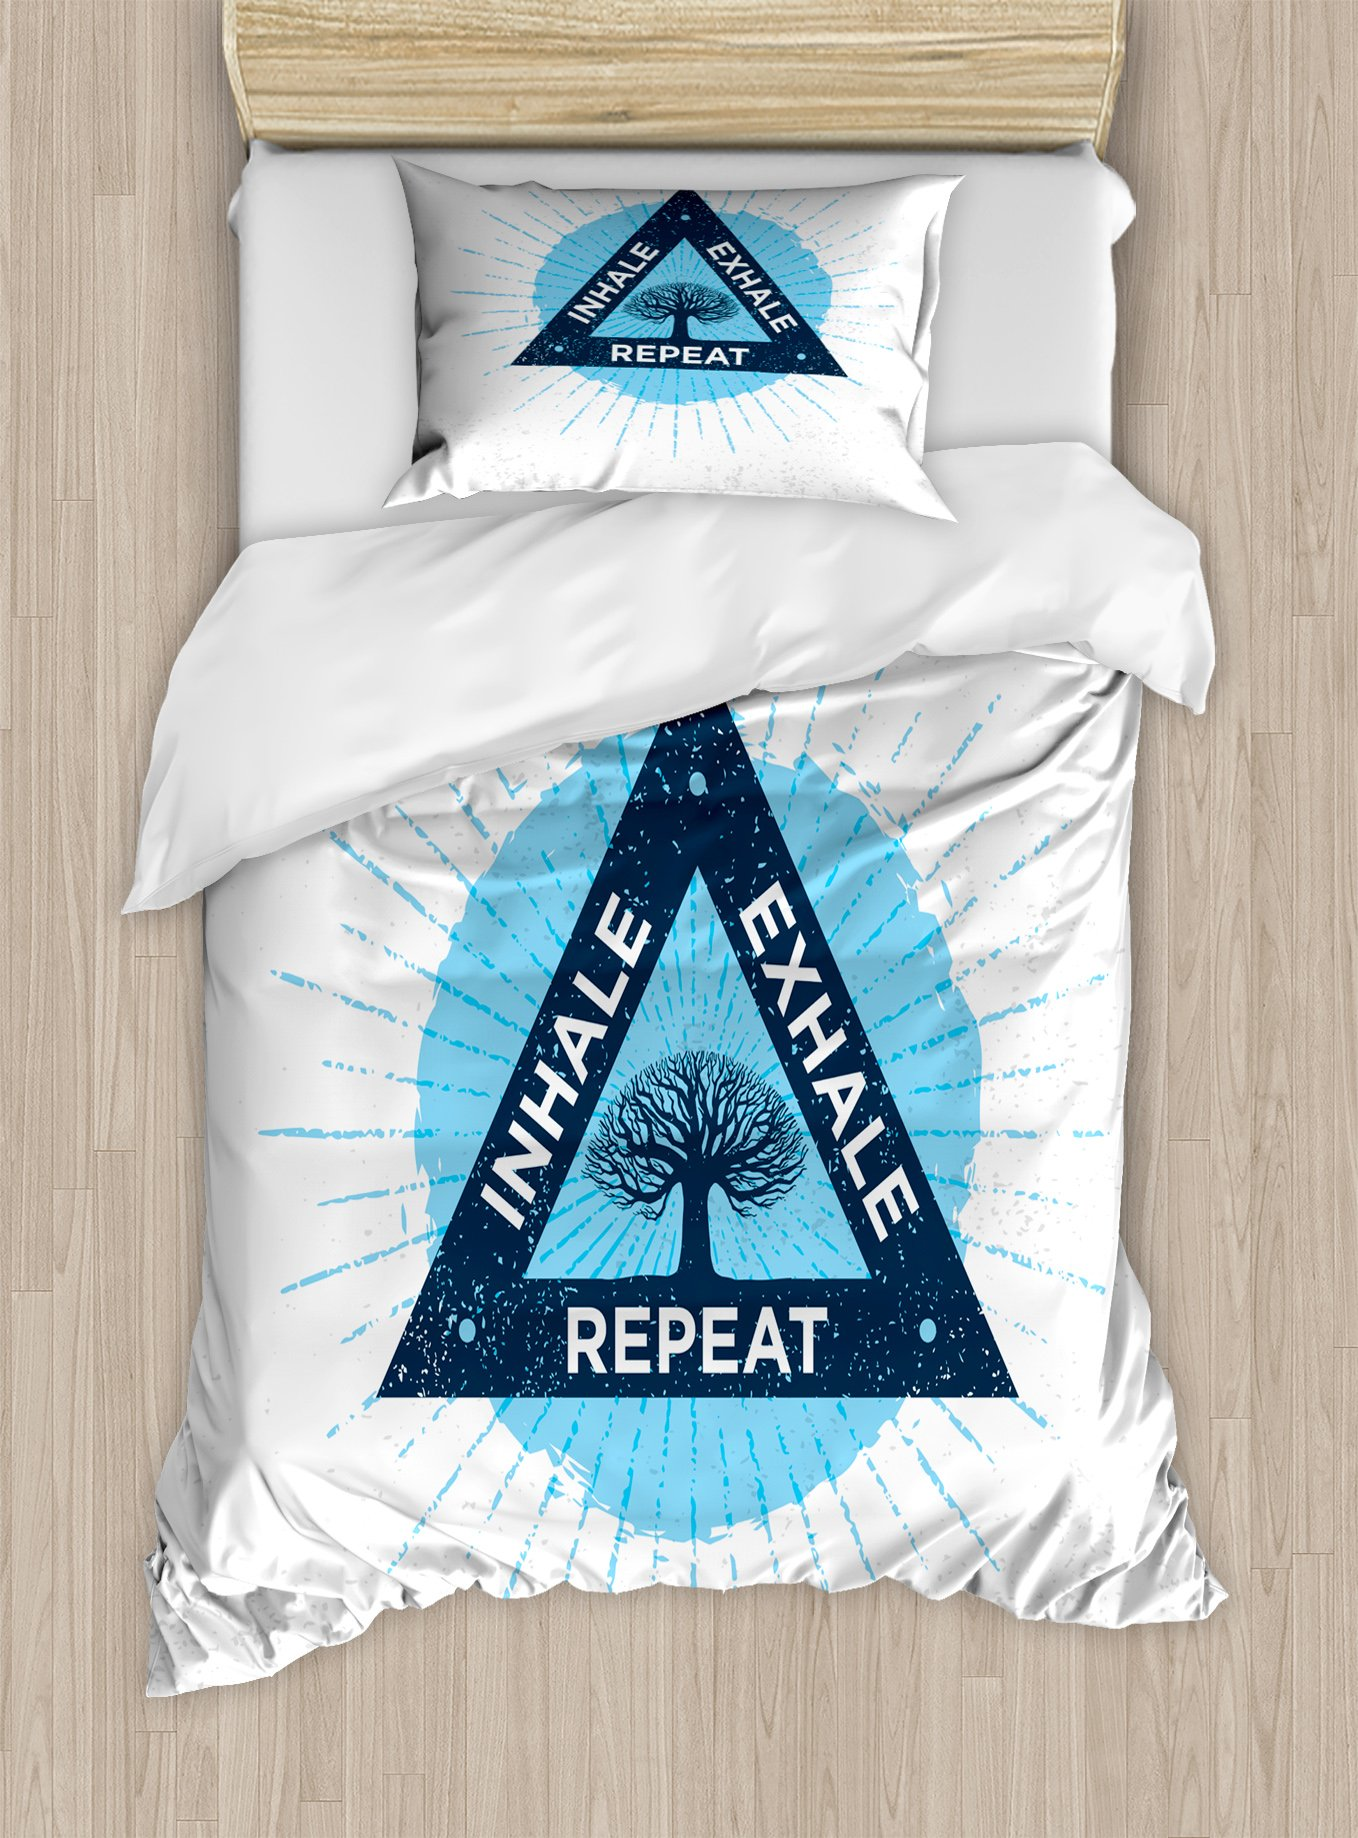 Ambesonne Inhale Exhale Twin Size Duvet Cover Set, Spa Yoga Meditation in Triangle with Tree of Life Tranquil Graphic, Decorative 2 Piece Bedding Set with 1 Pillow Sham, Night Blue and White